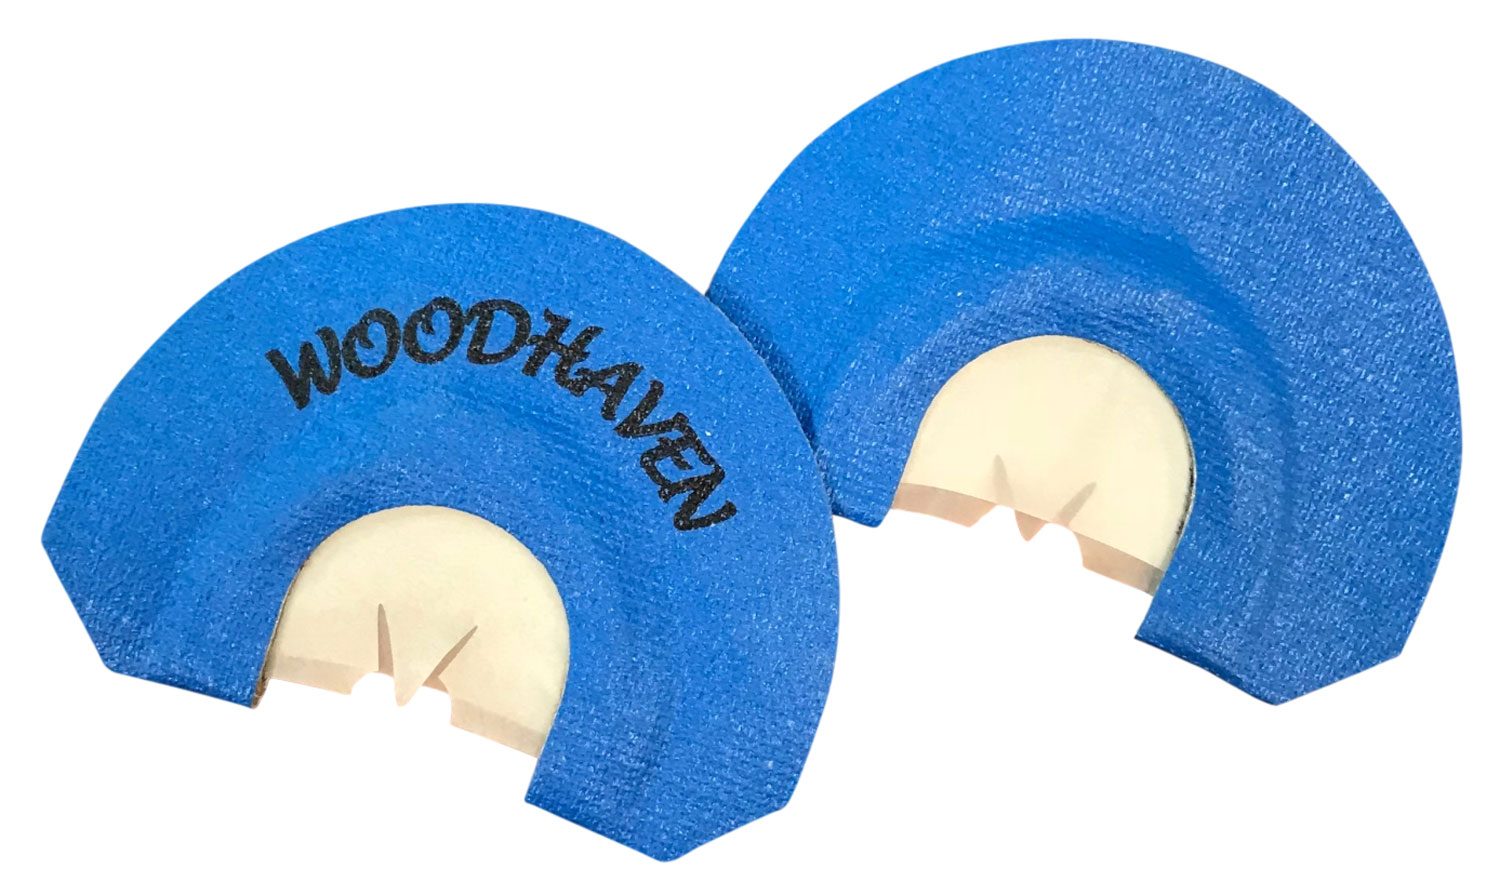 WOODHAVEN WH078 BLUE VYPER